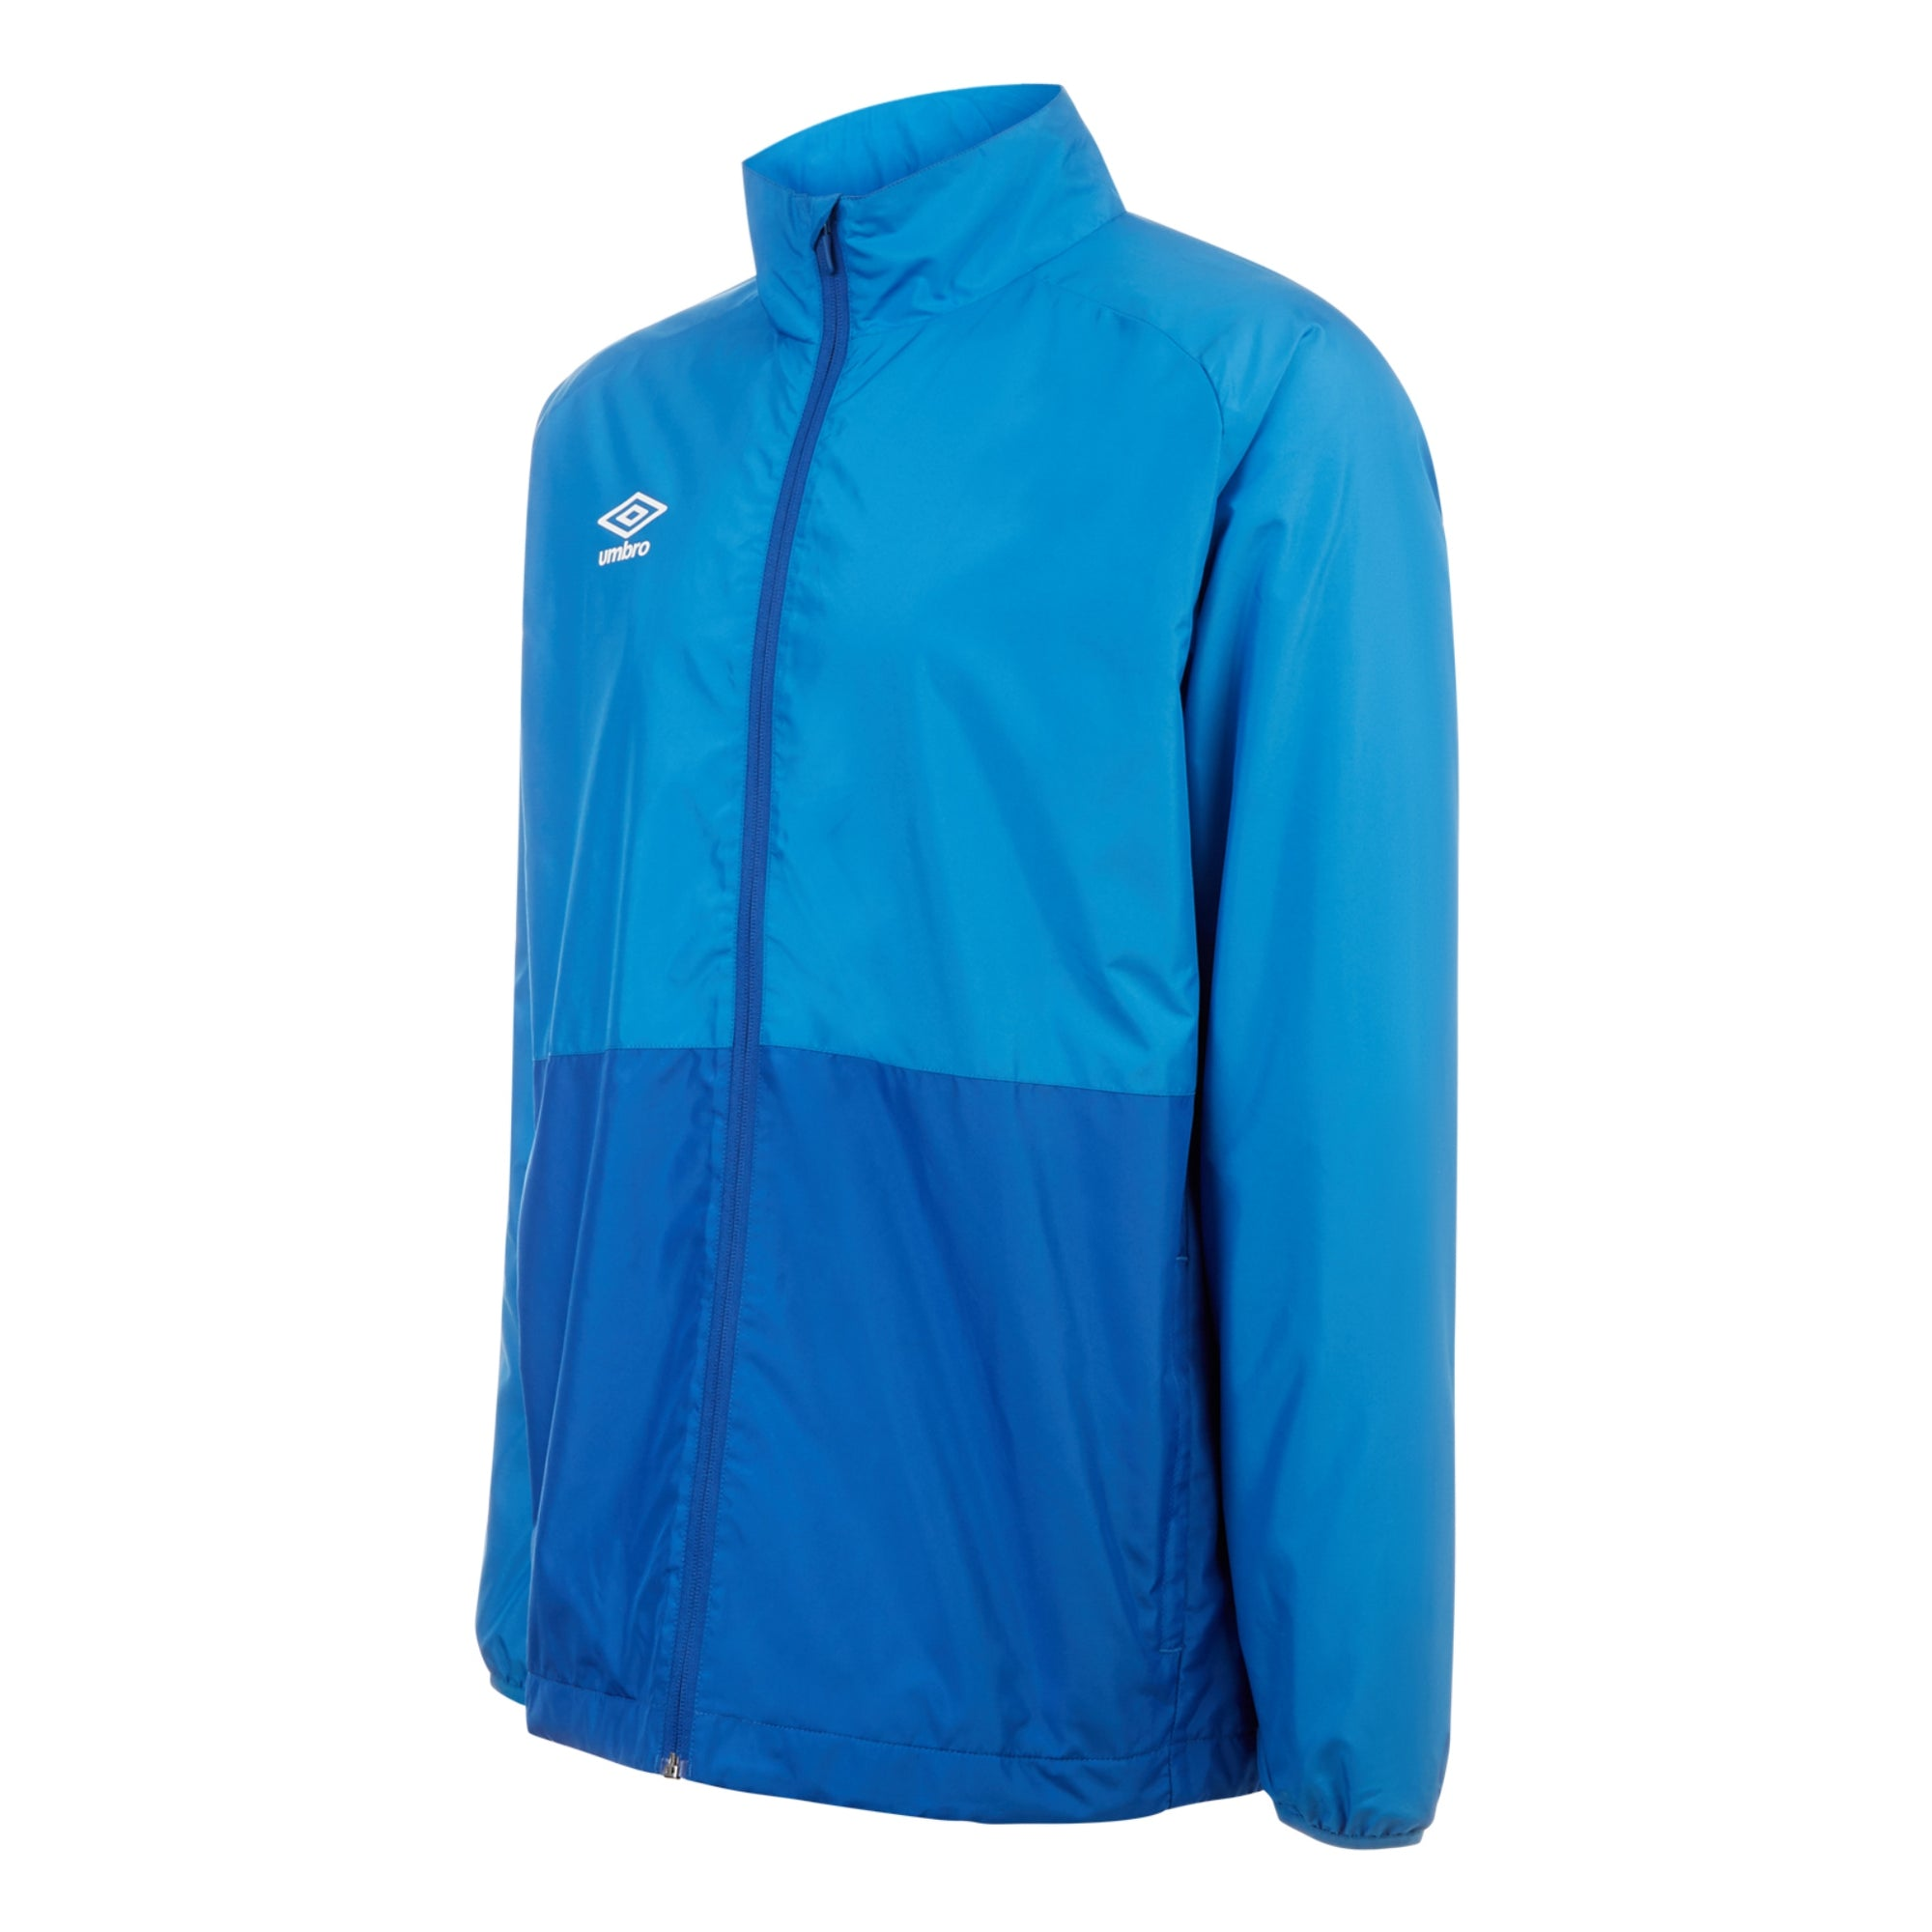 Umbro Training Shower Jacket - French Blue/Royal